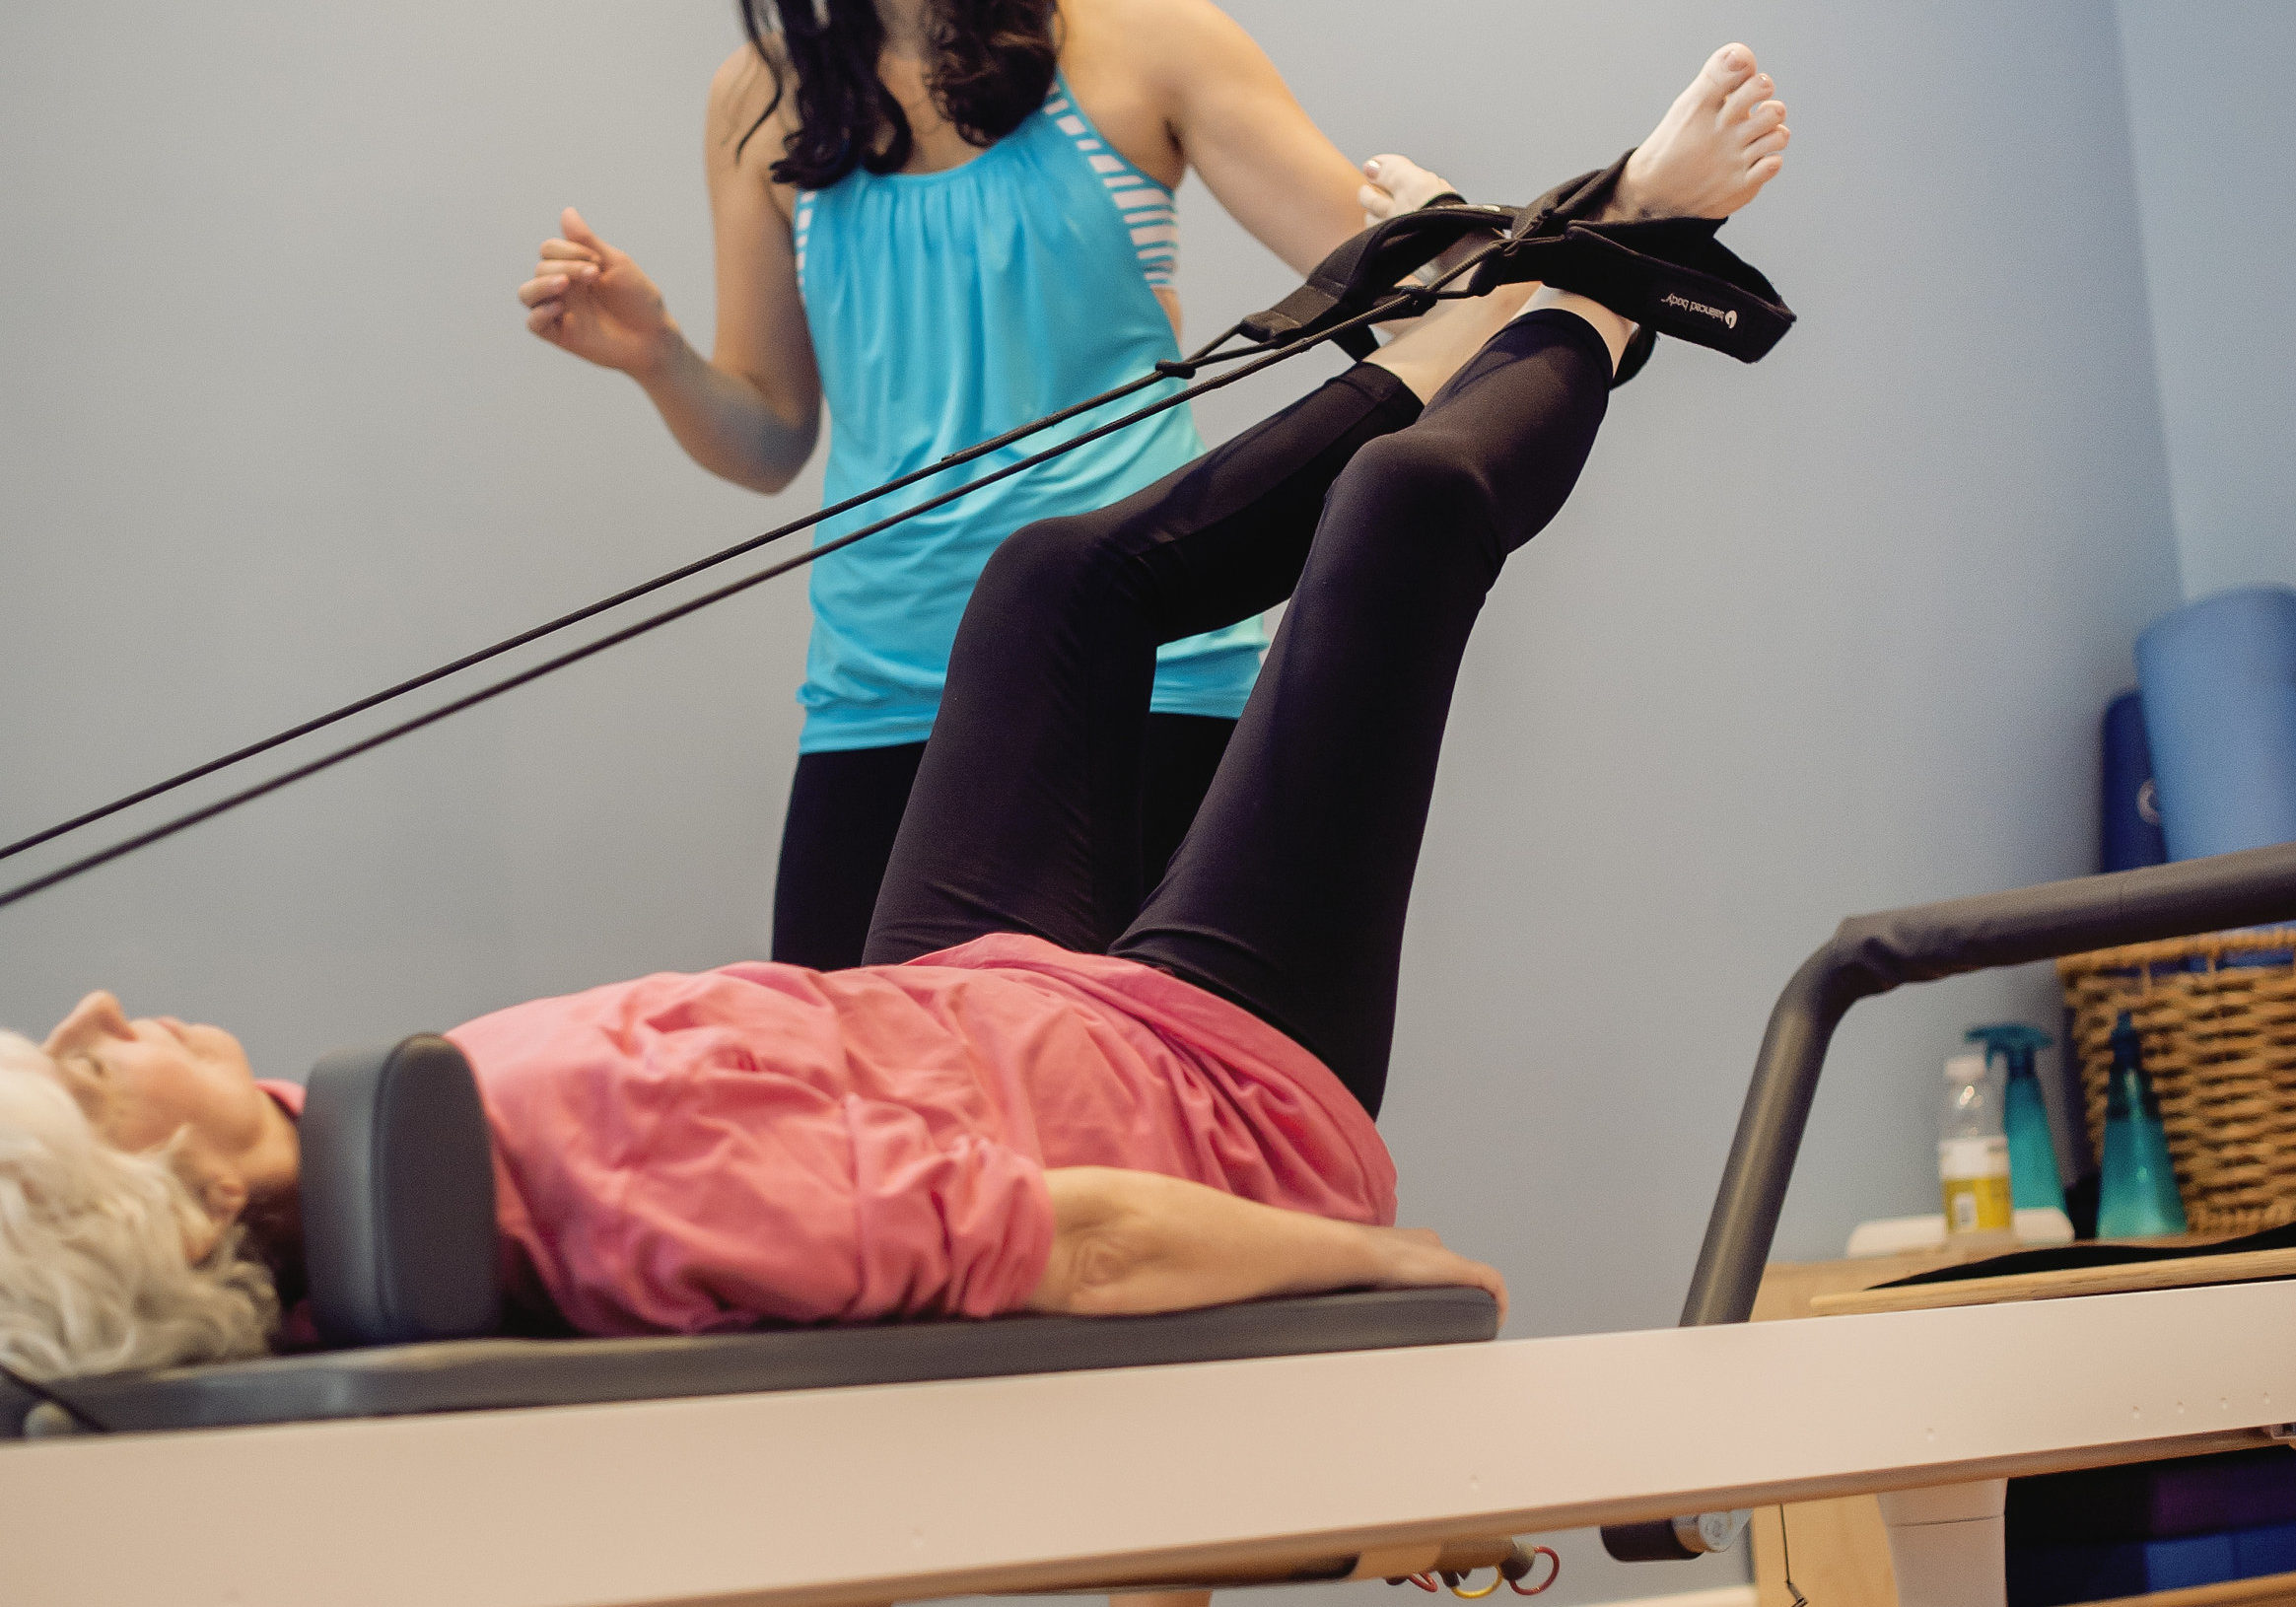 Pilates Private Session Starting May 11th Exercise During Quarantine